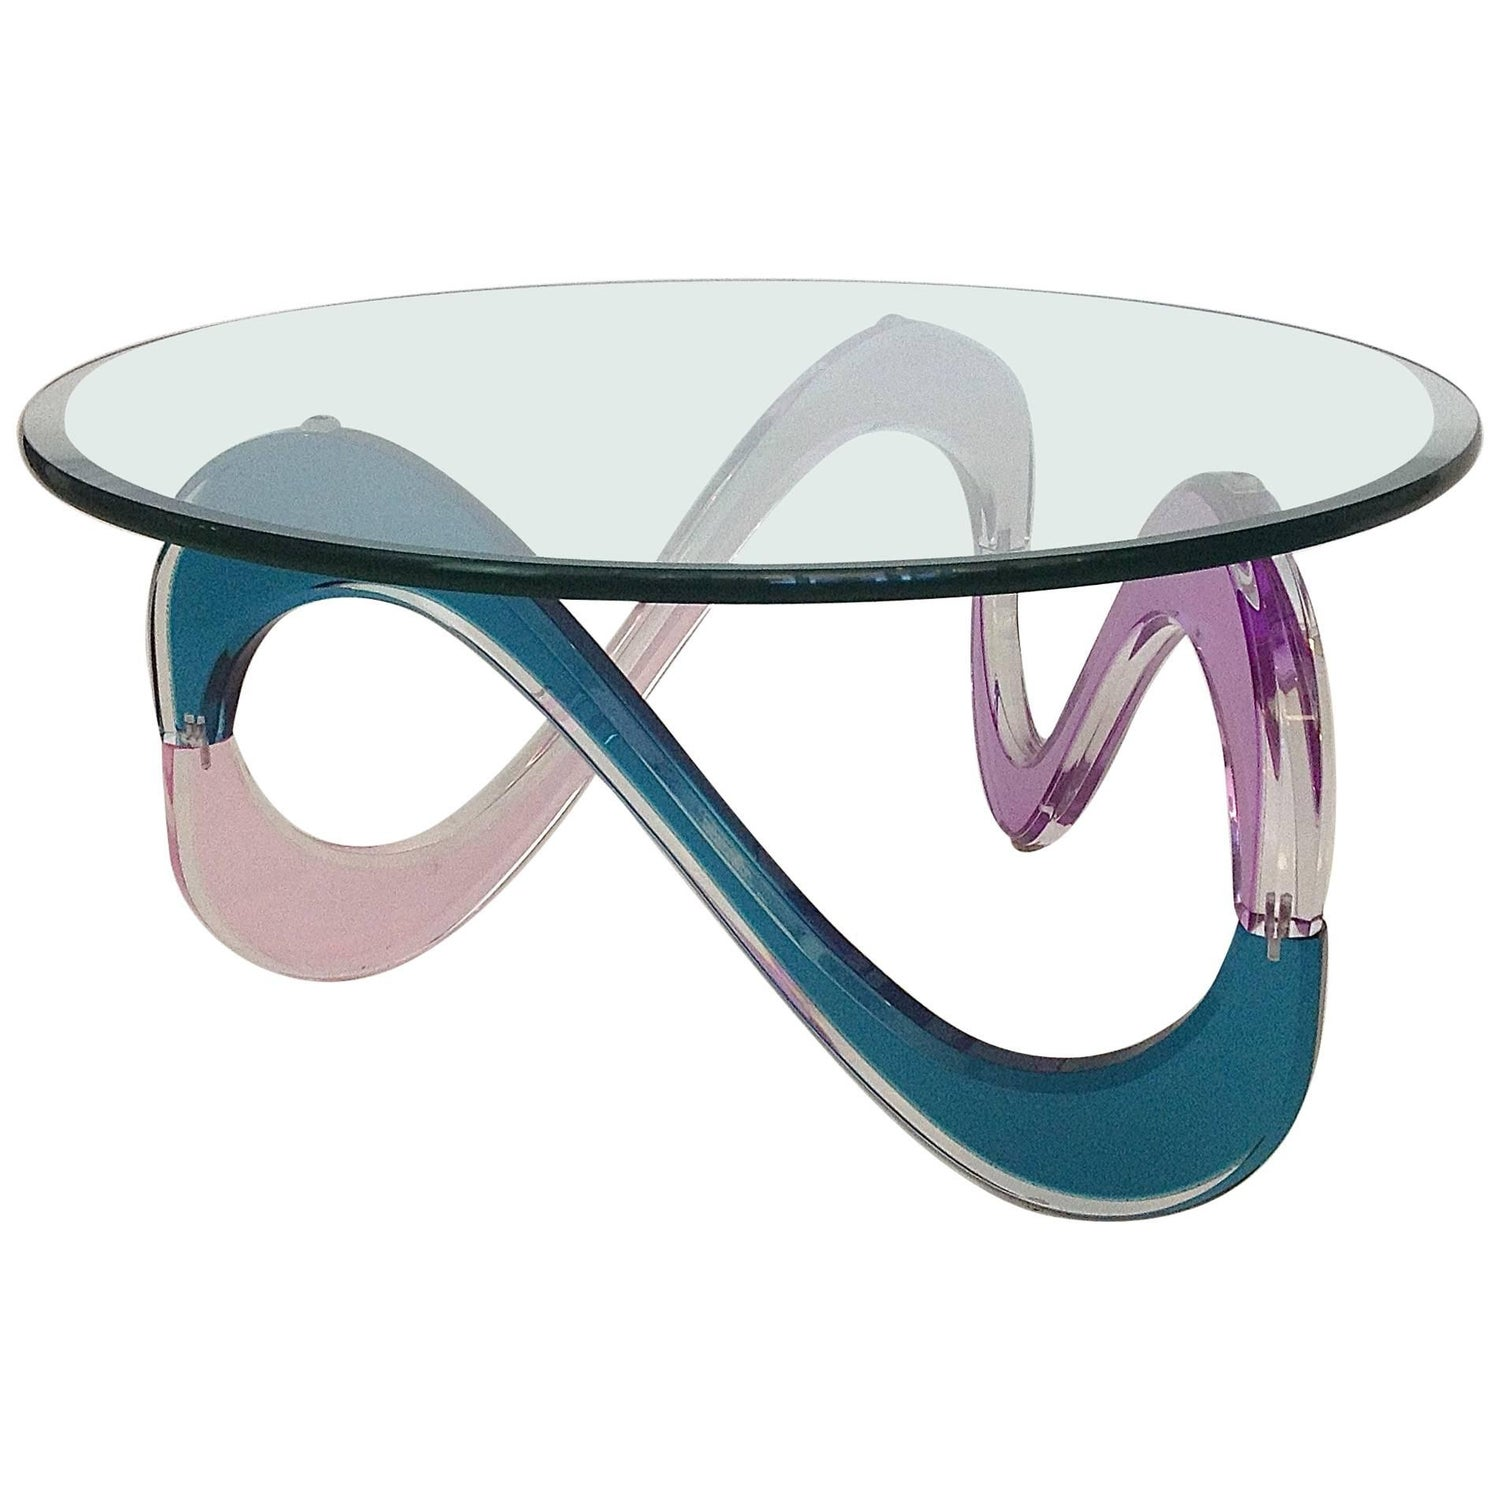 Shlomi Haziza Infinty Lucite Coffee Table For Sale at 1stdibs